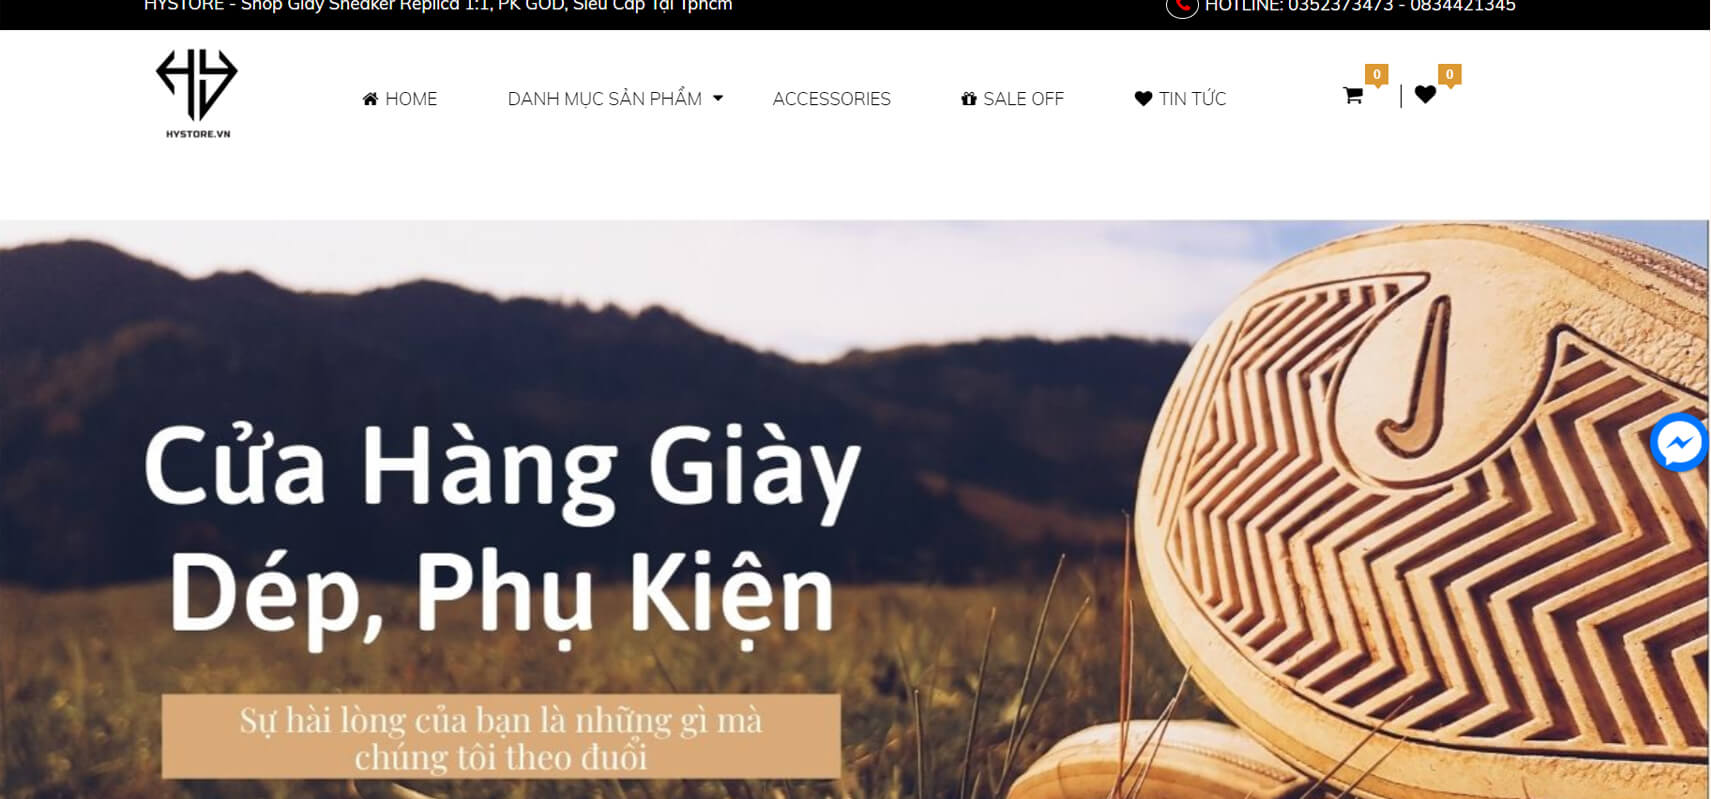 hinh anh website hy store